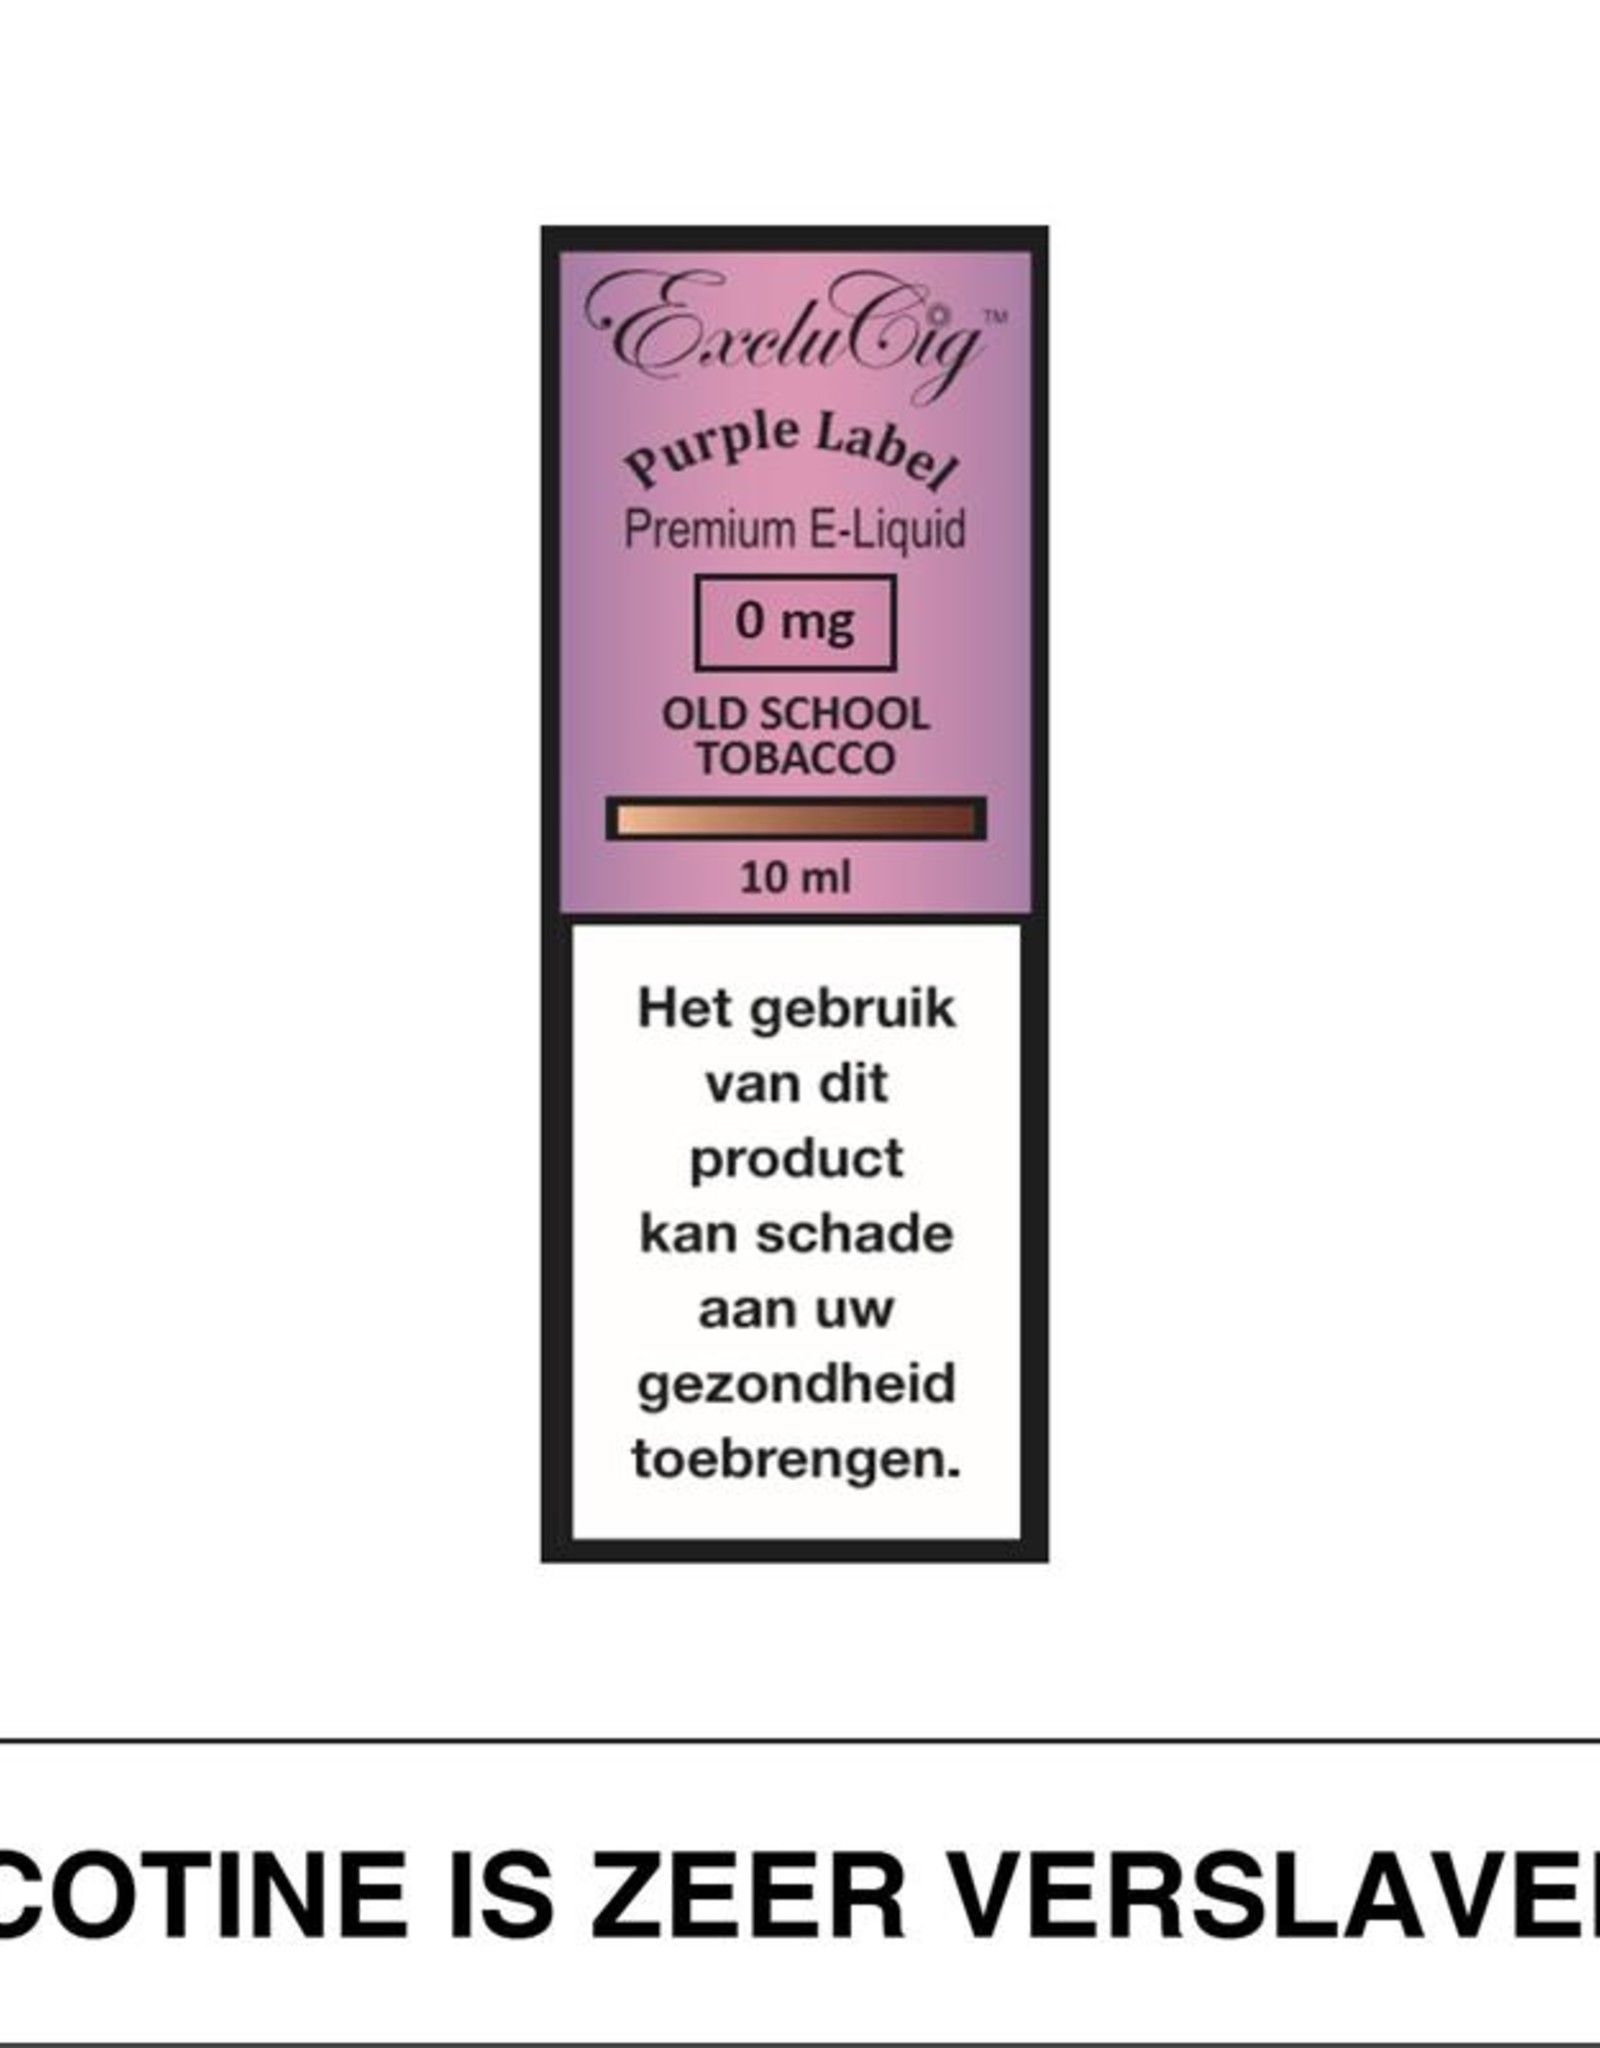 Exclucig Exclucig Purple Label E-Liquid Old School Tobacco 0 mg Nicotine